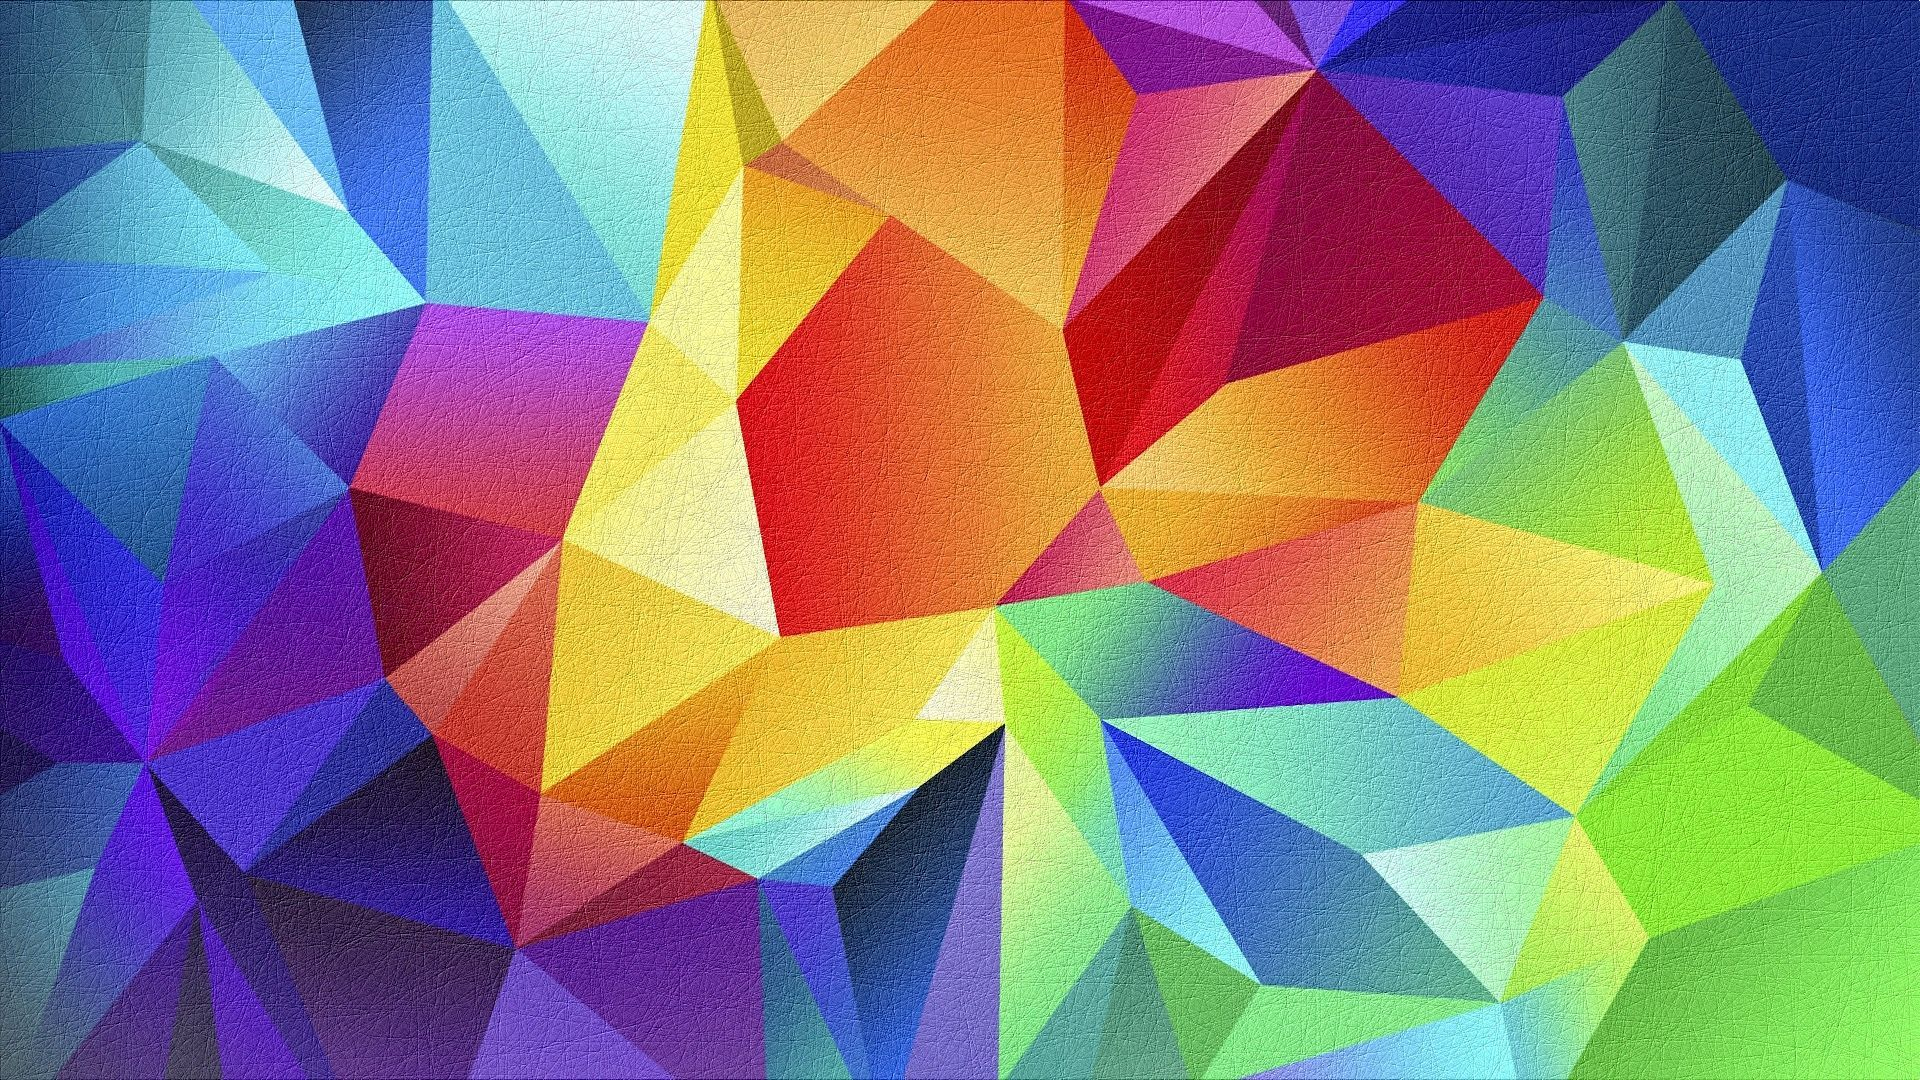 Geometric Shapes Wallpapers Top Free Geometric Shapes Backgrounds Wallpaperaccess